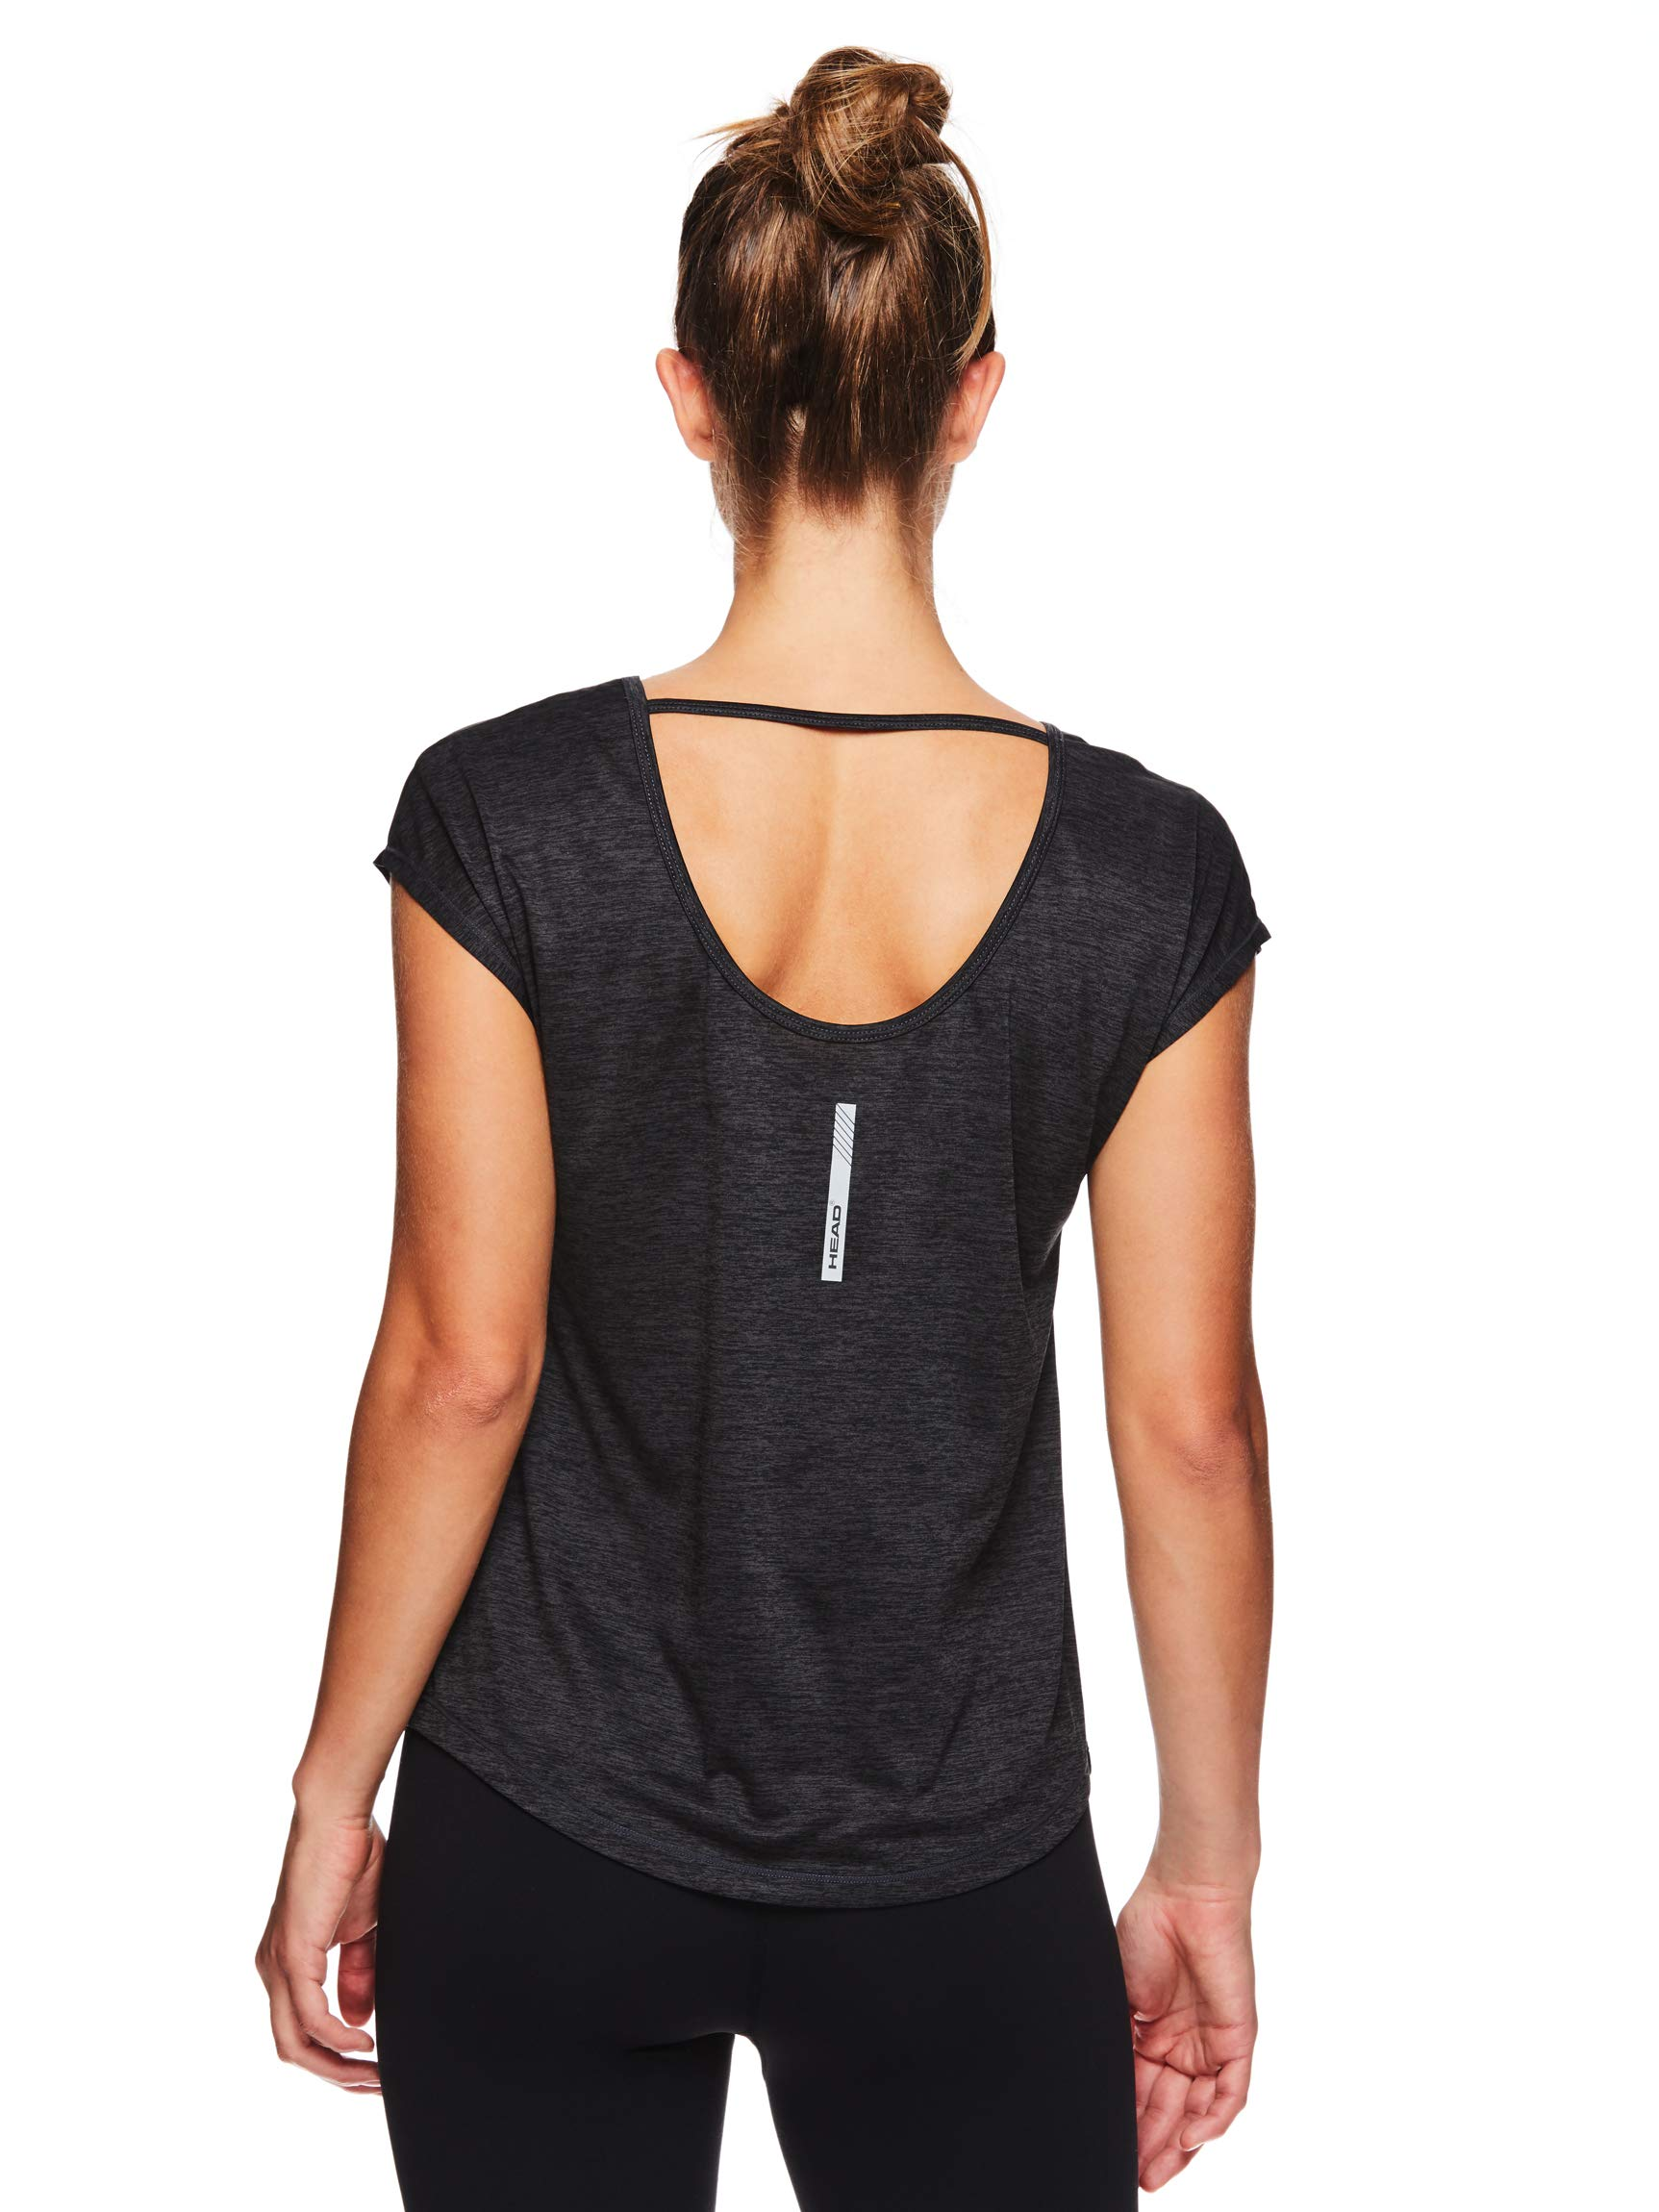 HEAD Women's Open Back Short Sleeve Workout T Shirt - Performance Scoop Neck Activewear Top - Black Heather, Small